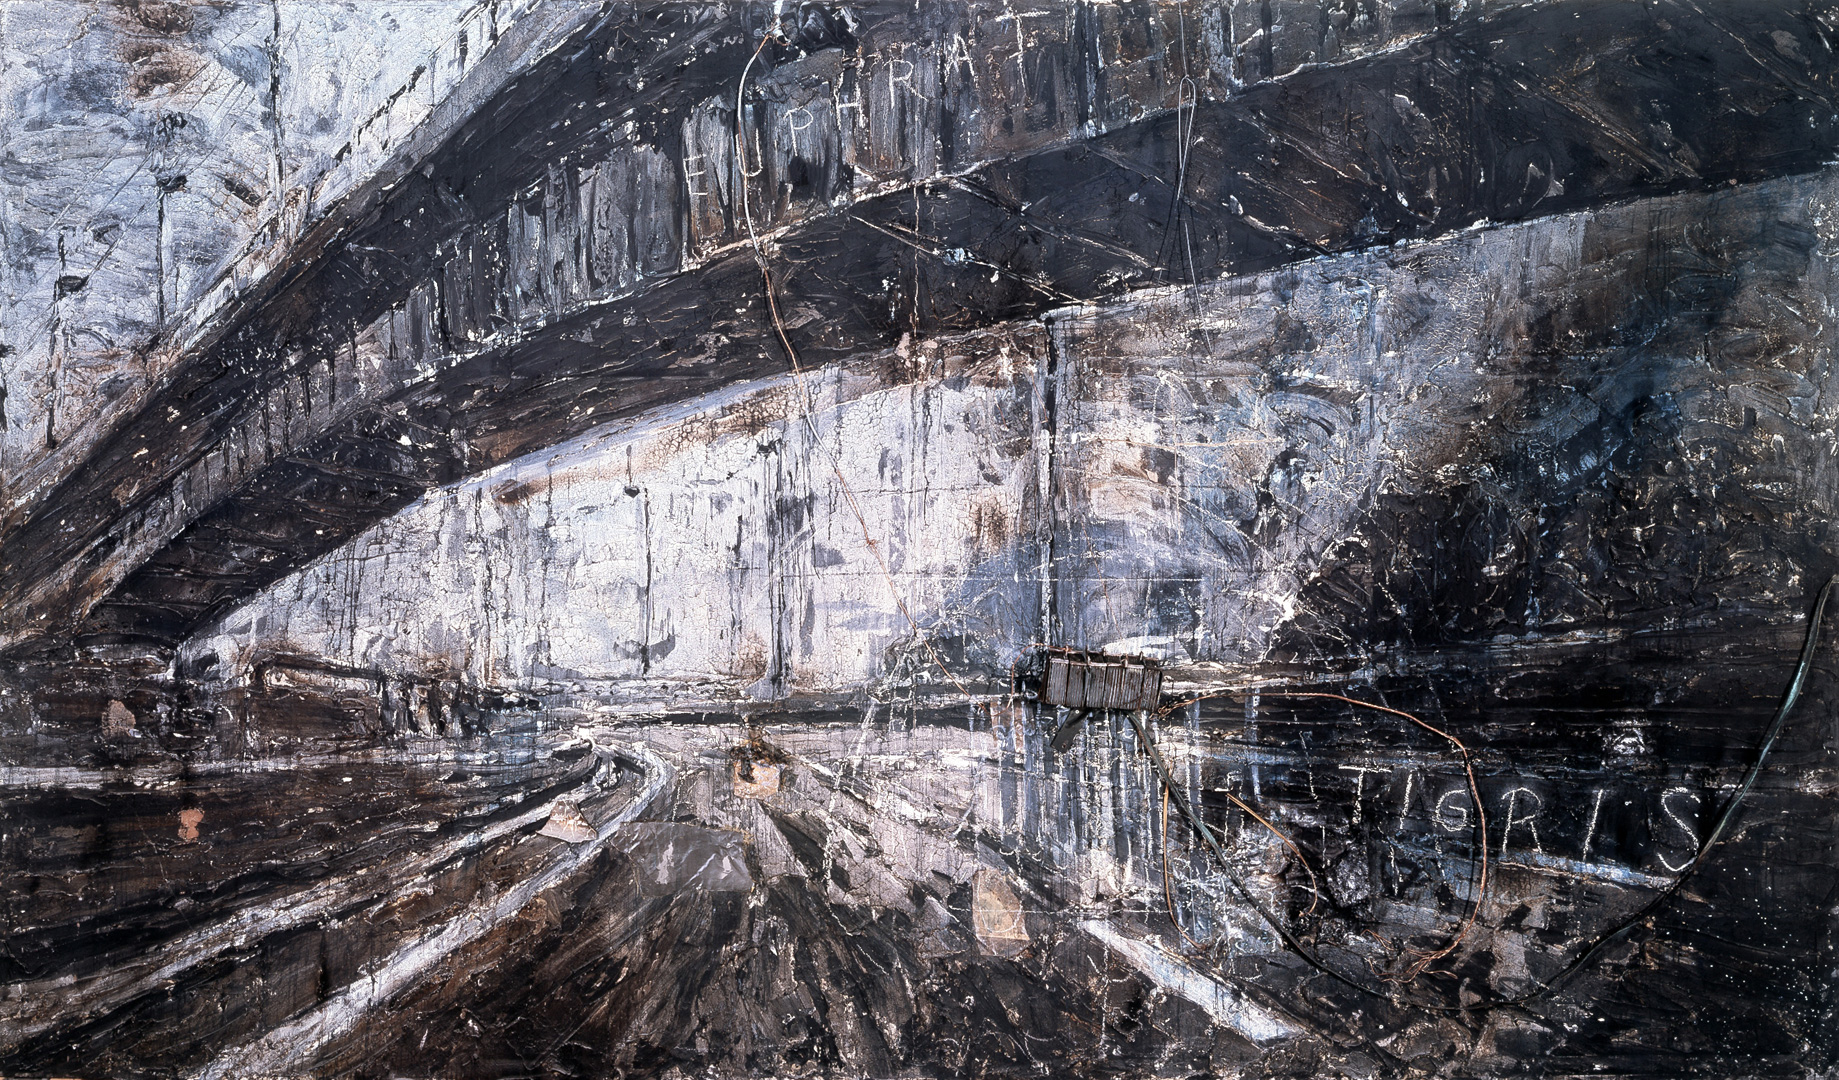 Anselm Kiefer - Zweistromland - The High Priestess, 1985-87, mixed media on two canvas panels with applied wire and metal object